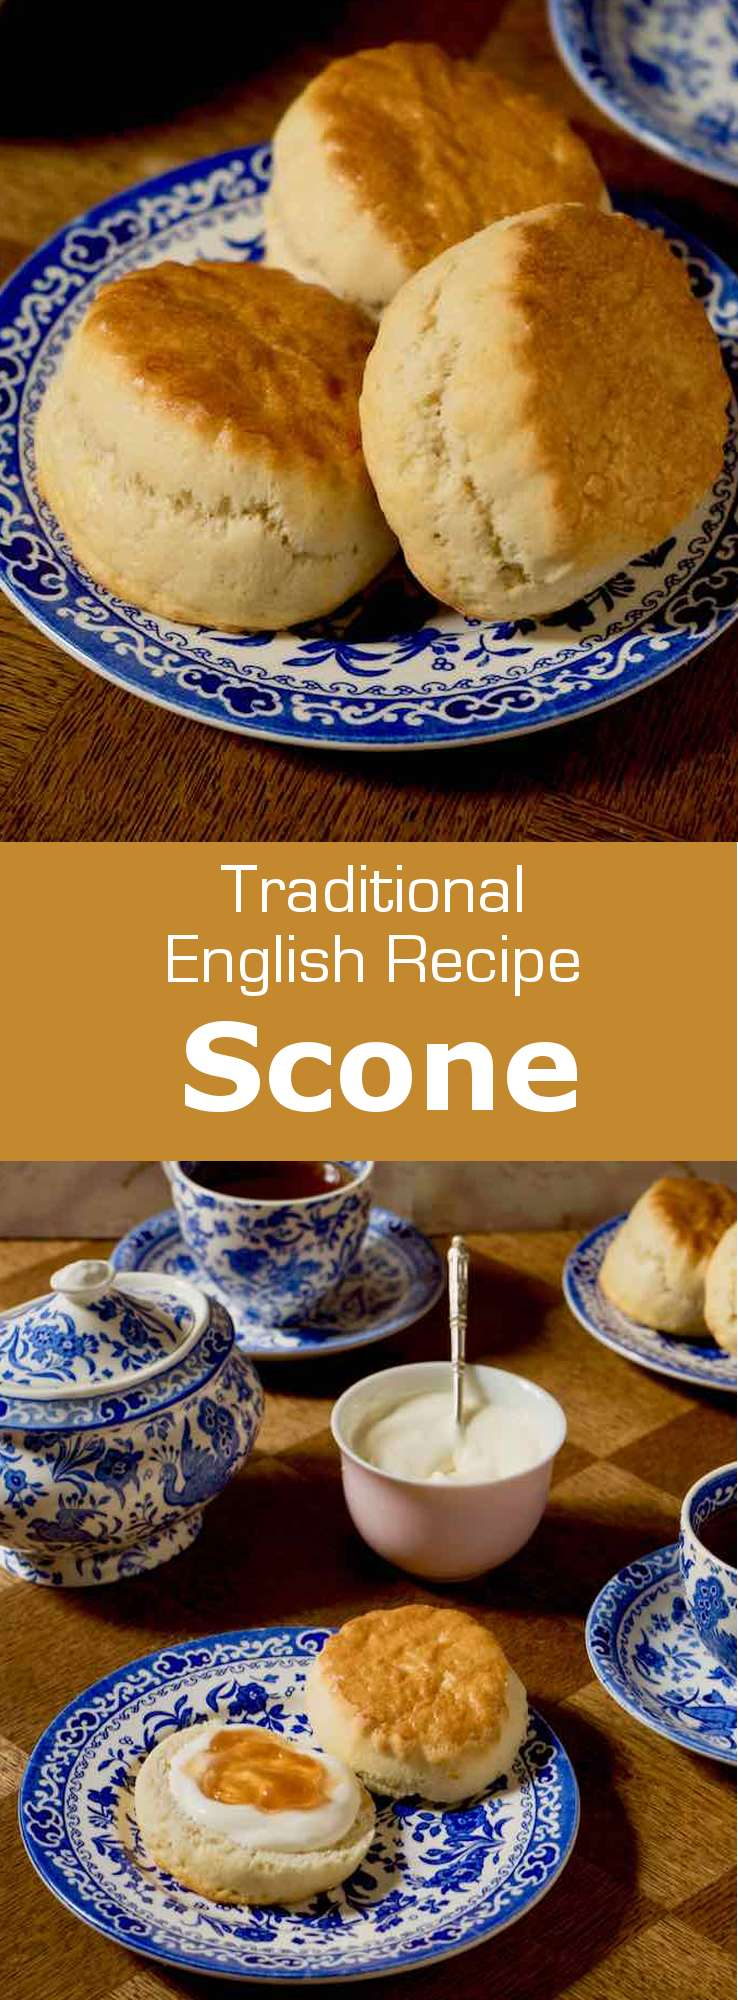 A scone is a delicious traditional British roll that is often served at tea time, along with jam and clotted cream. #UnitedKingdom #EnglishCuisine #BritishCuisine #EnglishFood #BritishFood #EnglishRecipe #BritishRecipe #WorldCuisine #196flavors